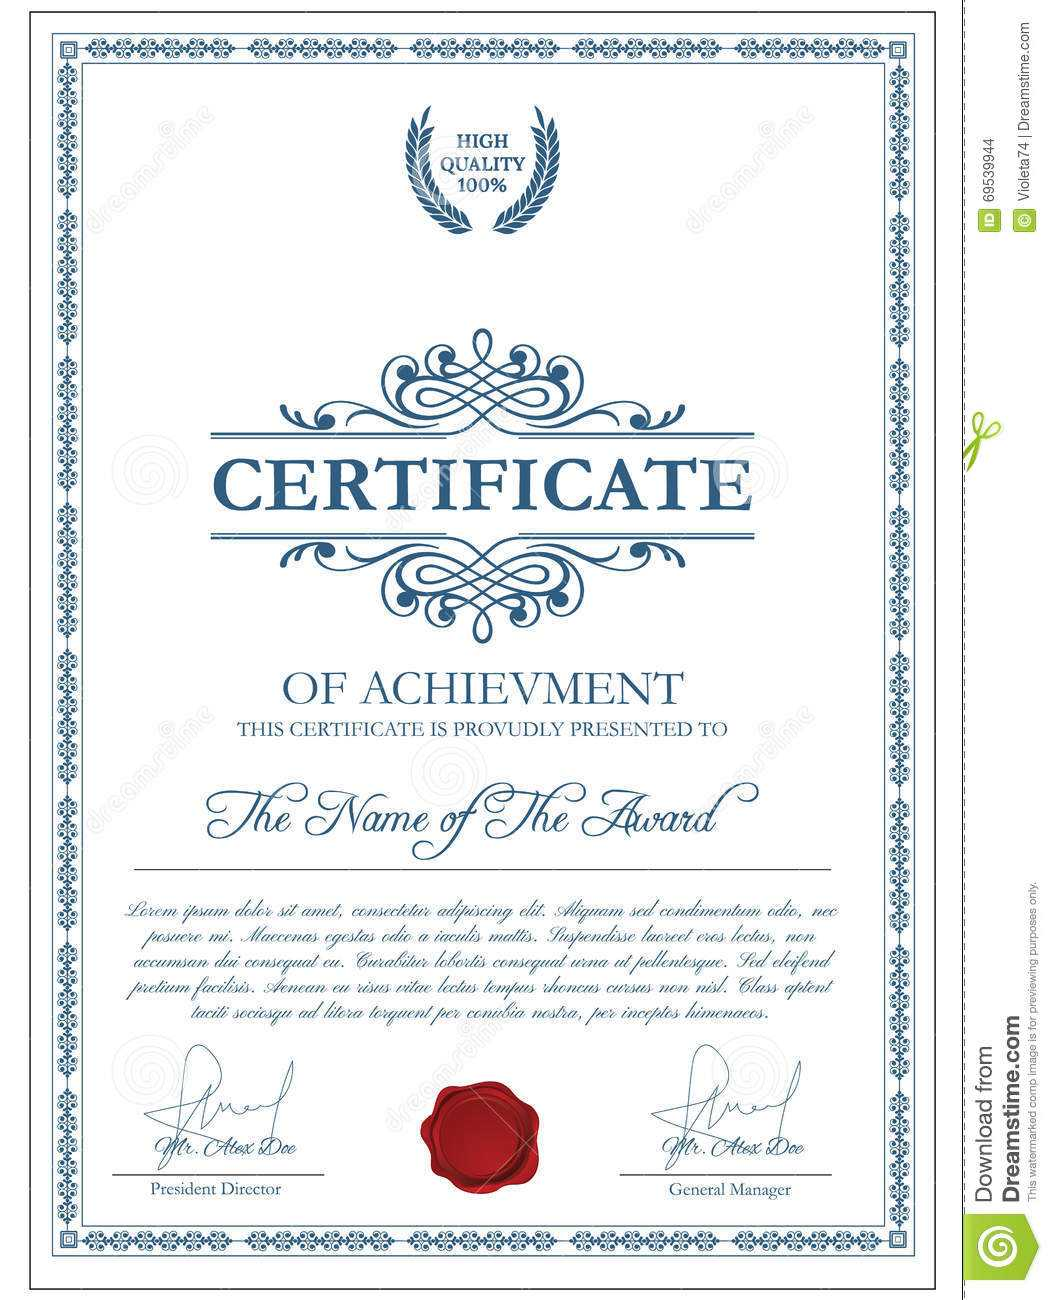 Certificate Template With Guilloche Elements. Stock Vector Within Validation Certificate Template